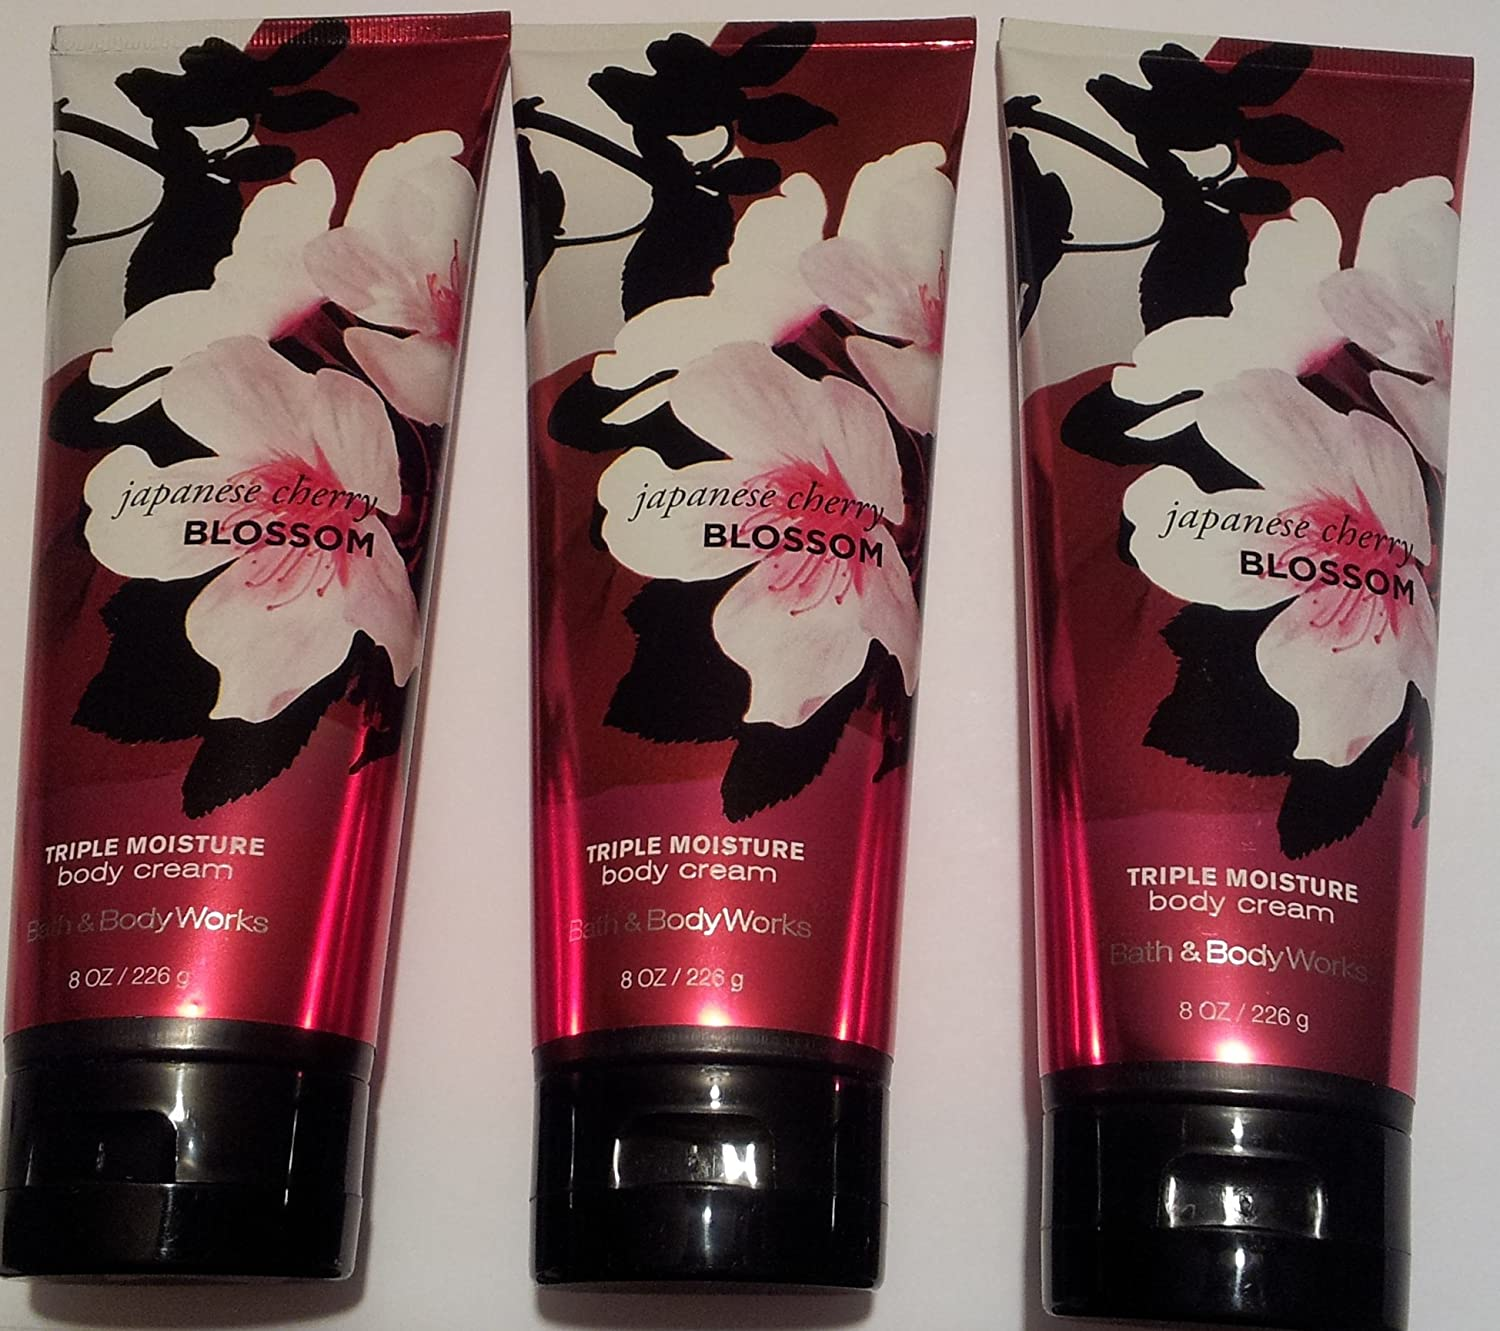 Bath and Body Works Japanese Cherry Blossom Body Cream 3 Pack